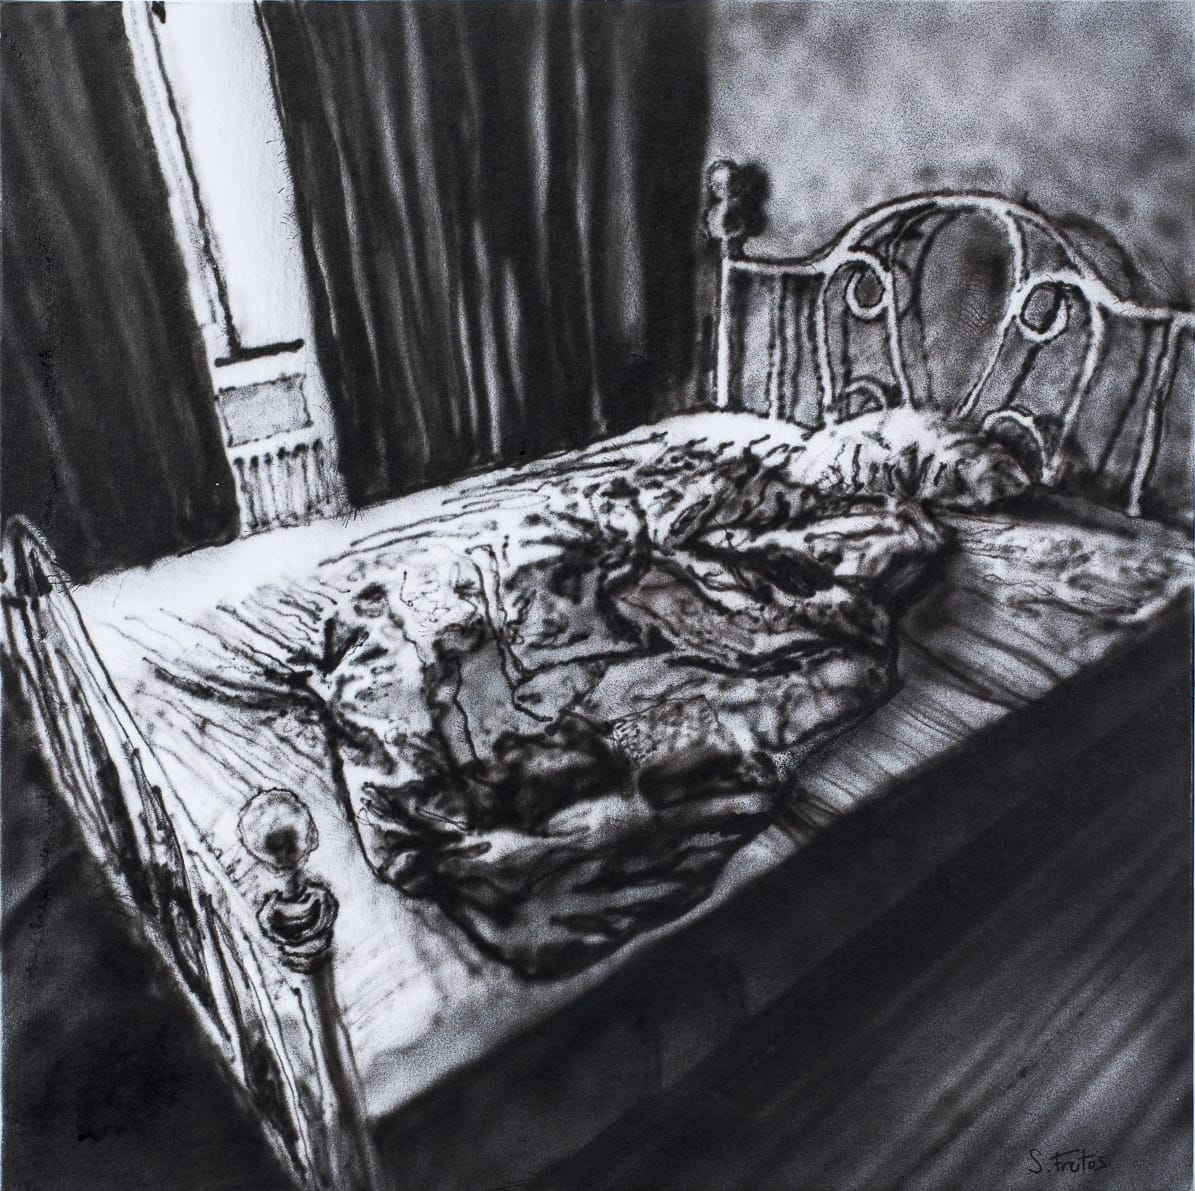 Bed, Amsterdam. Ink on paper on wood, 30 x 30 cm, 2018